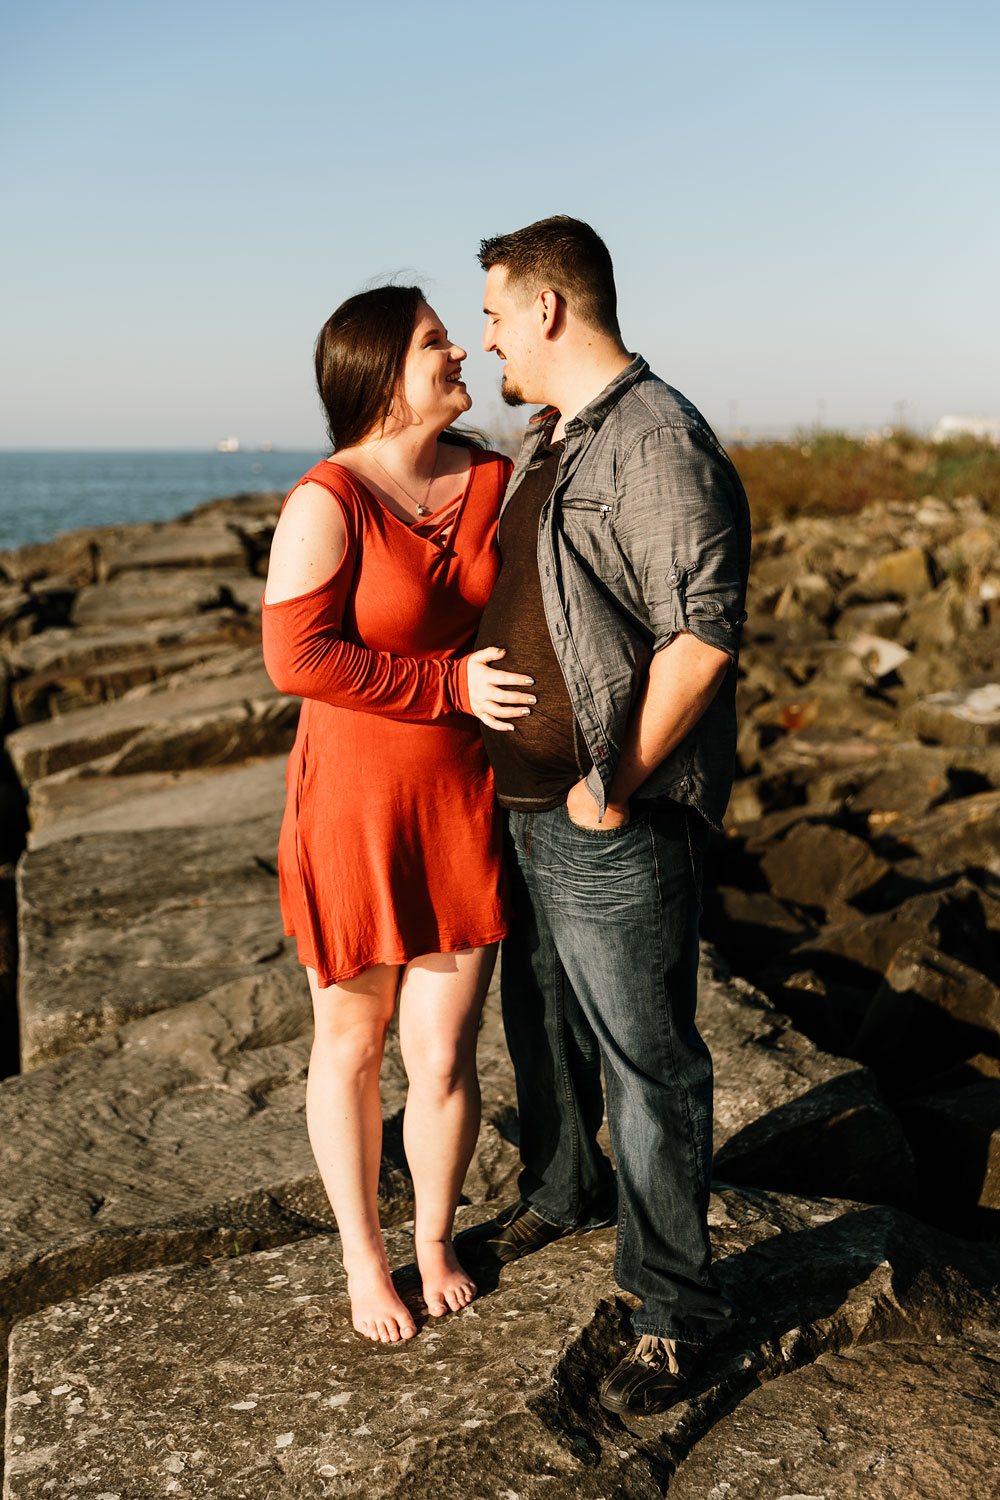 edgewater-beach-engagement-session-wendy-park-cleveland-wedding-photographers-1.jpg